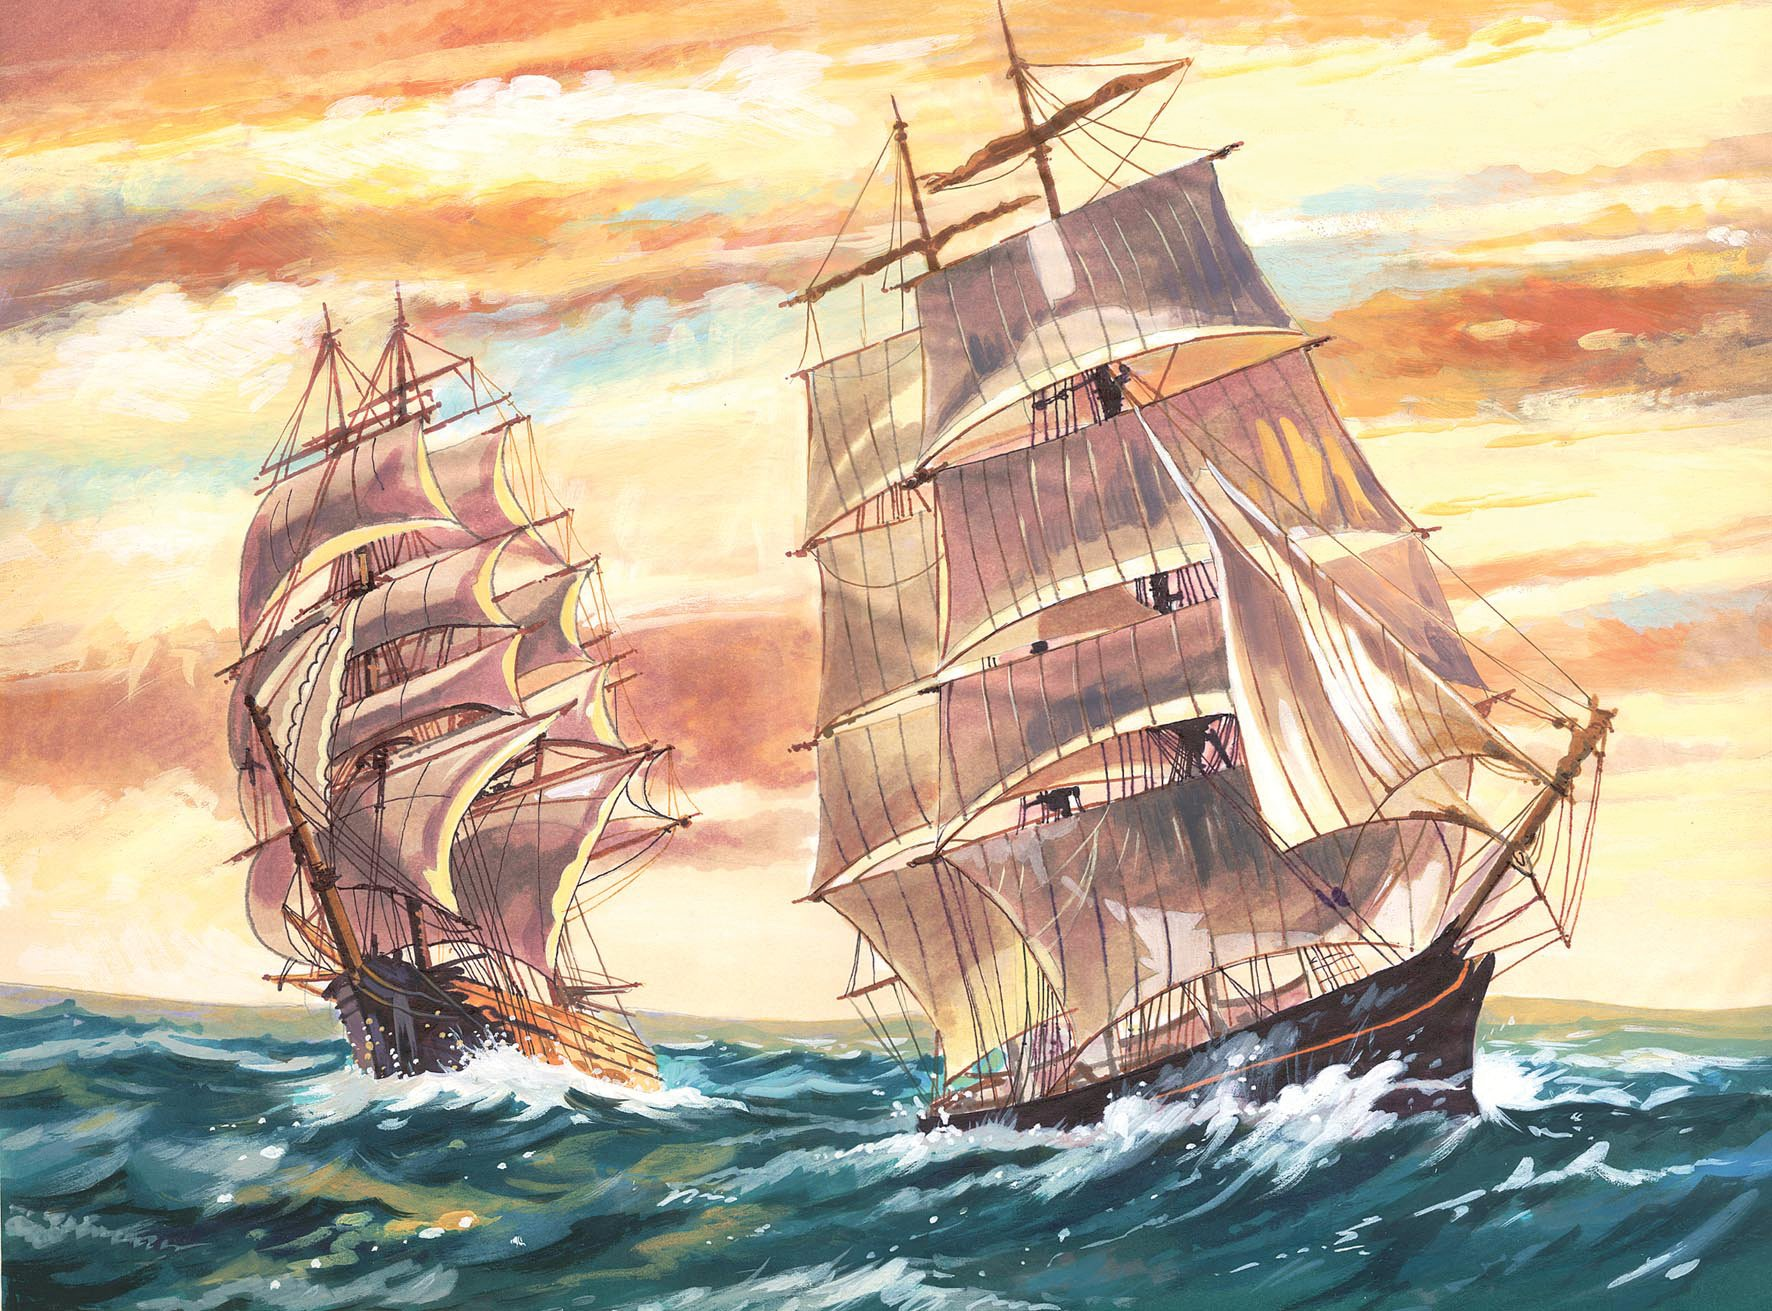 Ship paint by number kits pbn kits of pirate ships and for Pre printed canvas to paint for adults